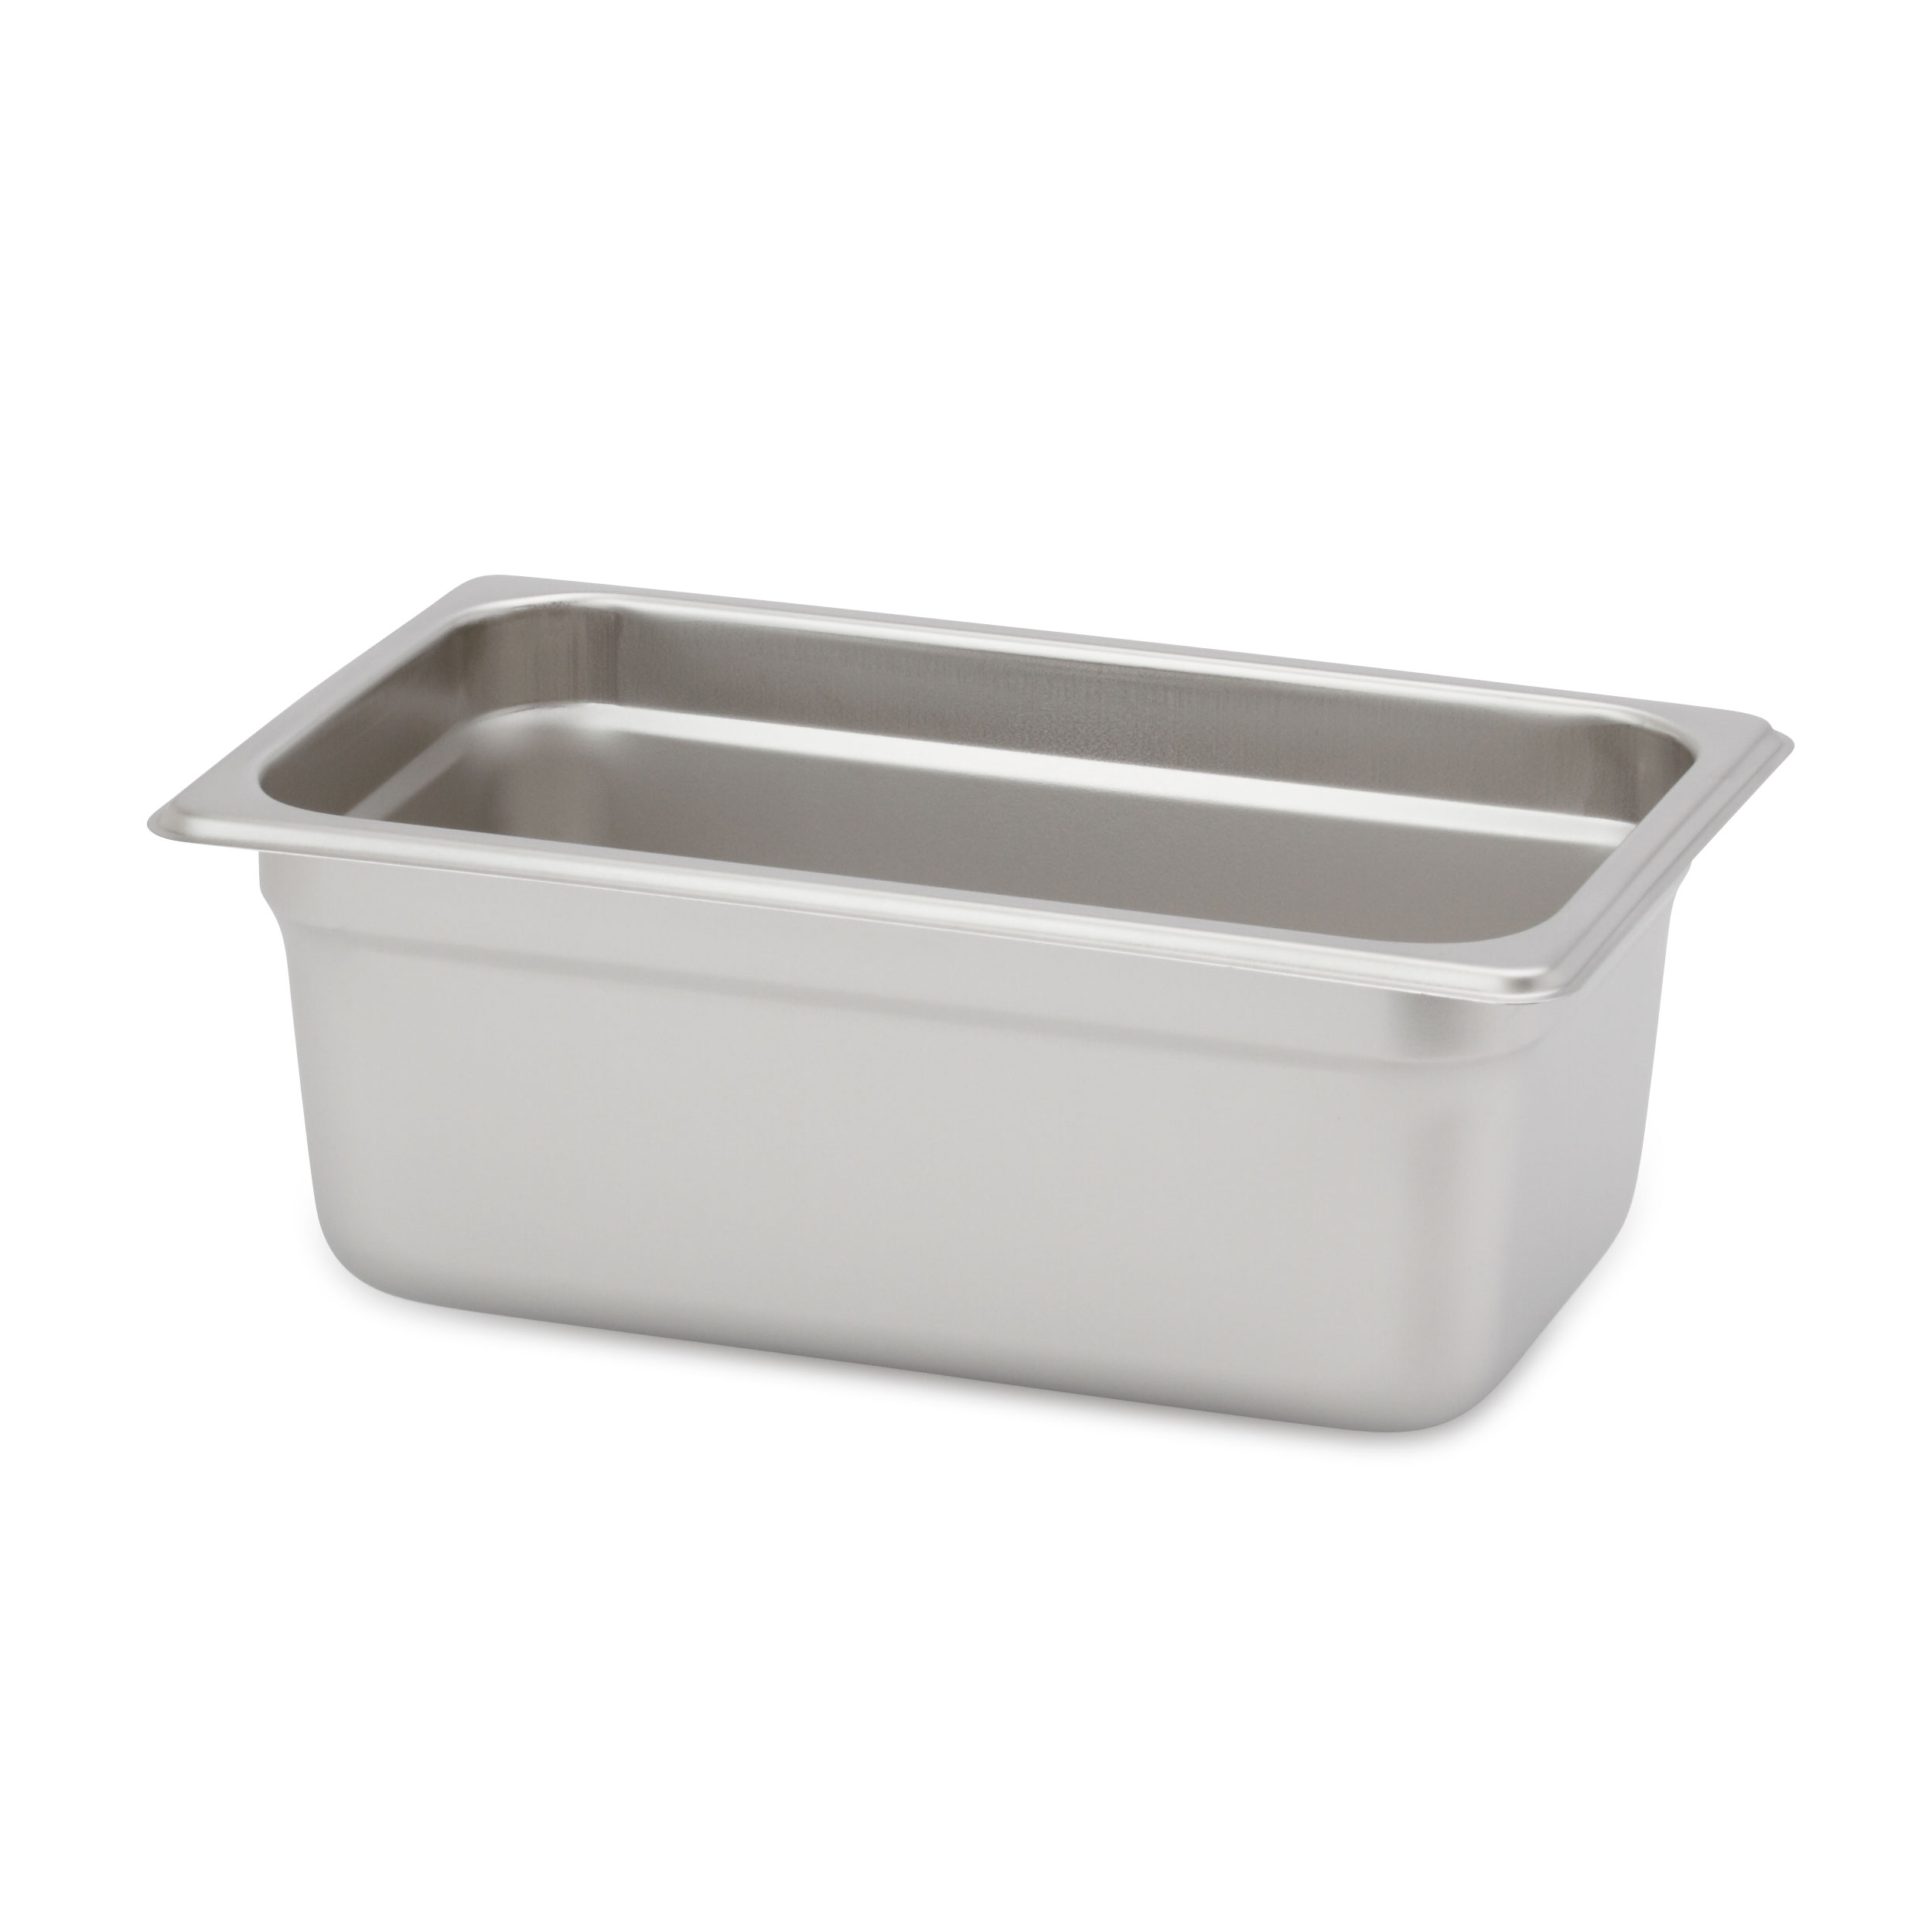 Royal Industries ROY STP 1404 H steam table pan, stainless steel